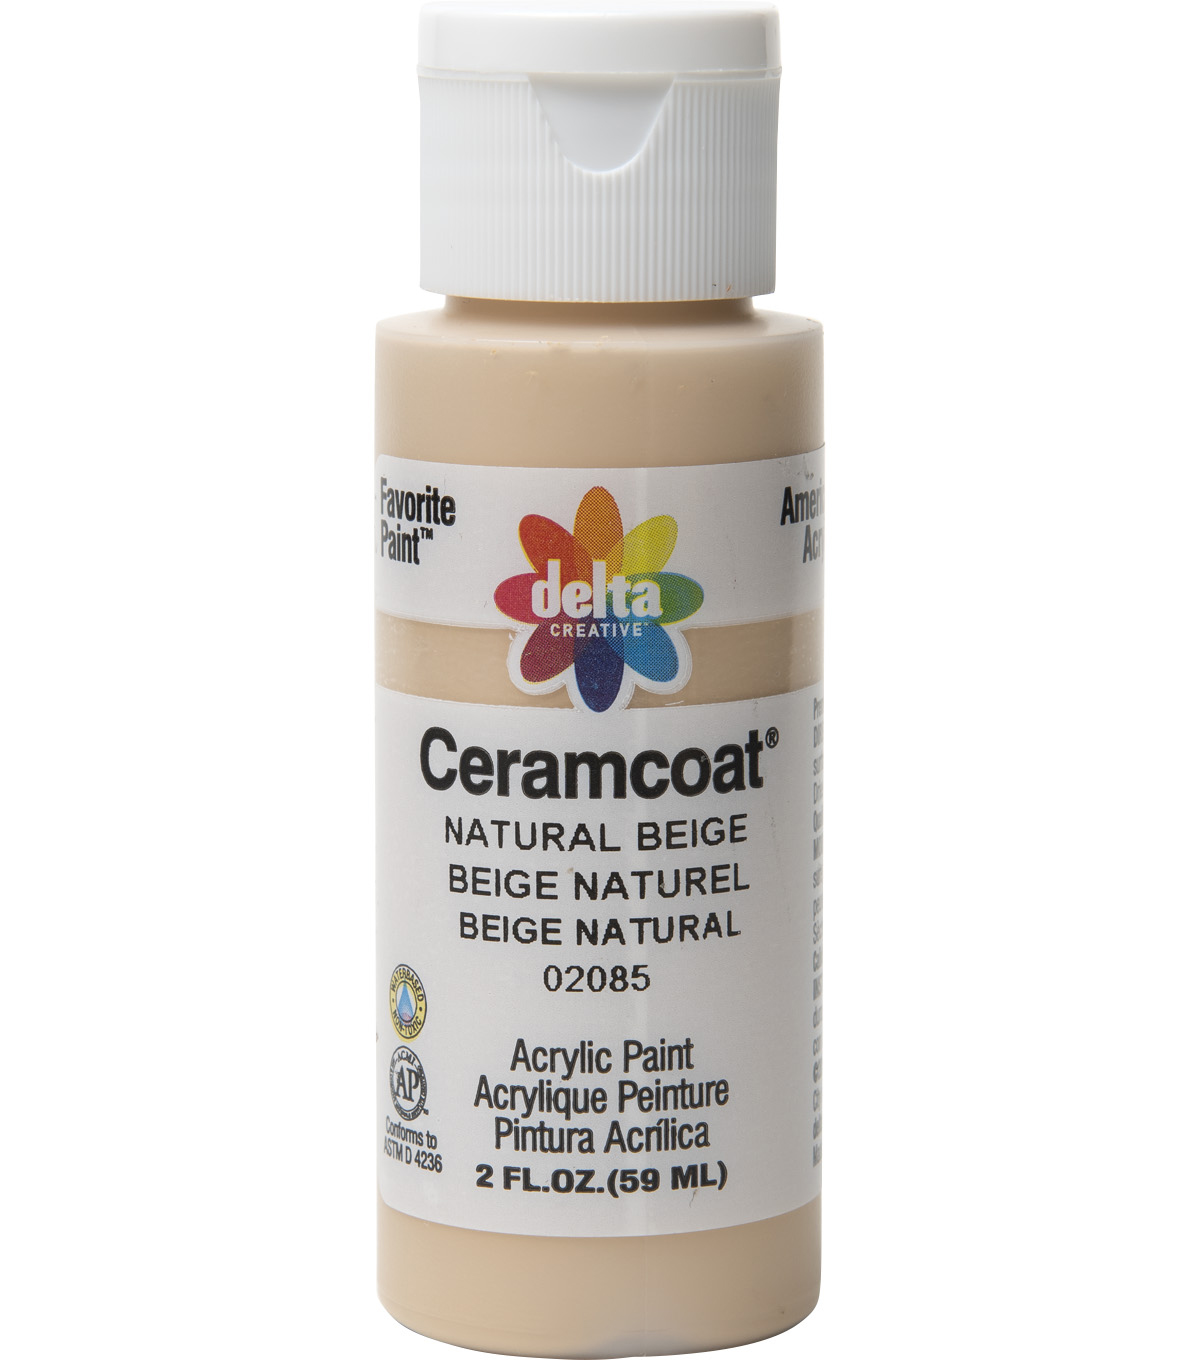 Delta Ceramcoat Acrylic Paint 2 oz, Ac Flesh